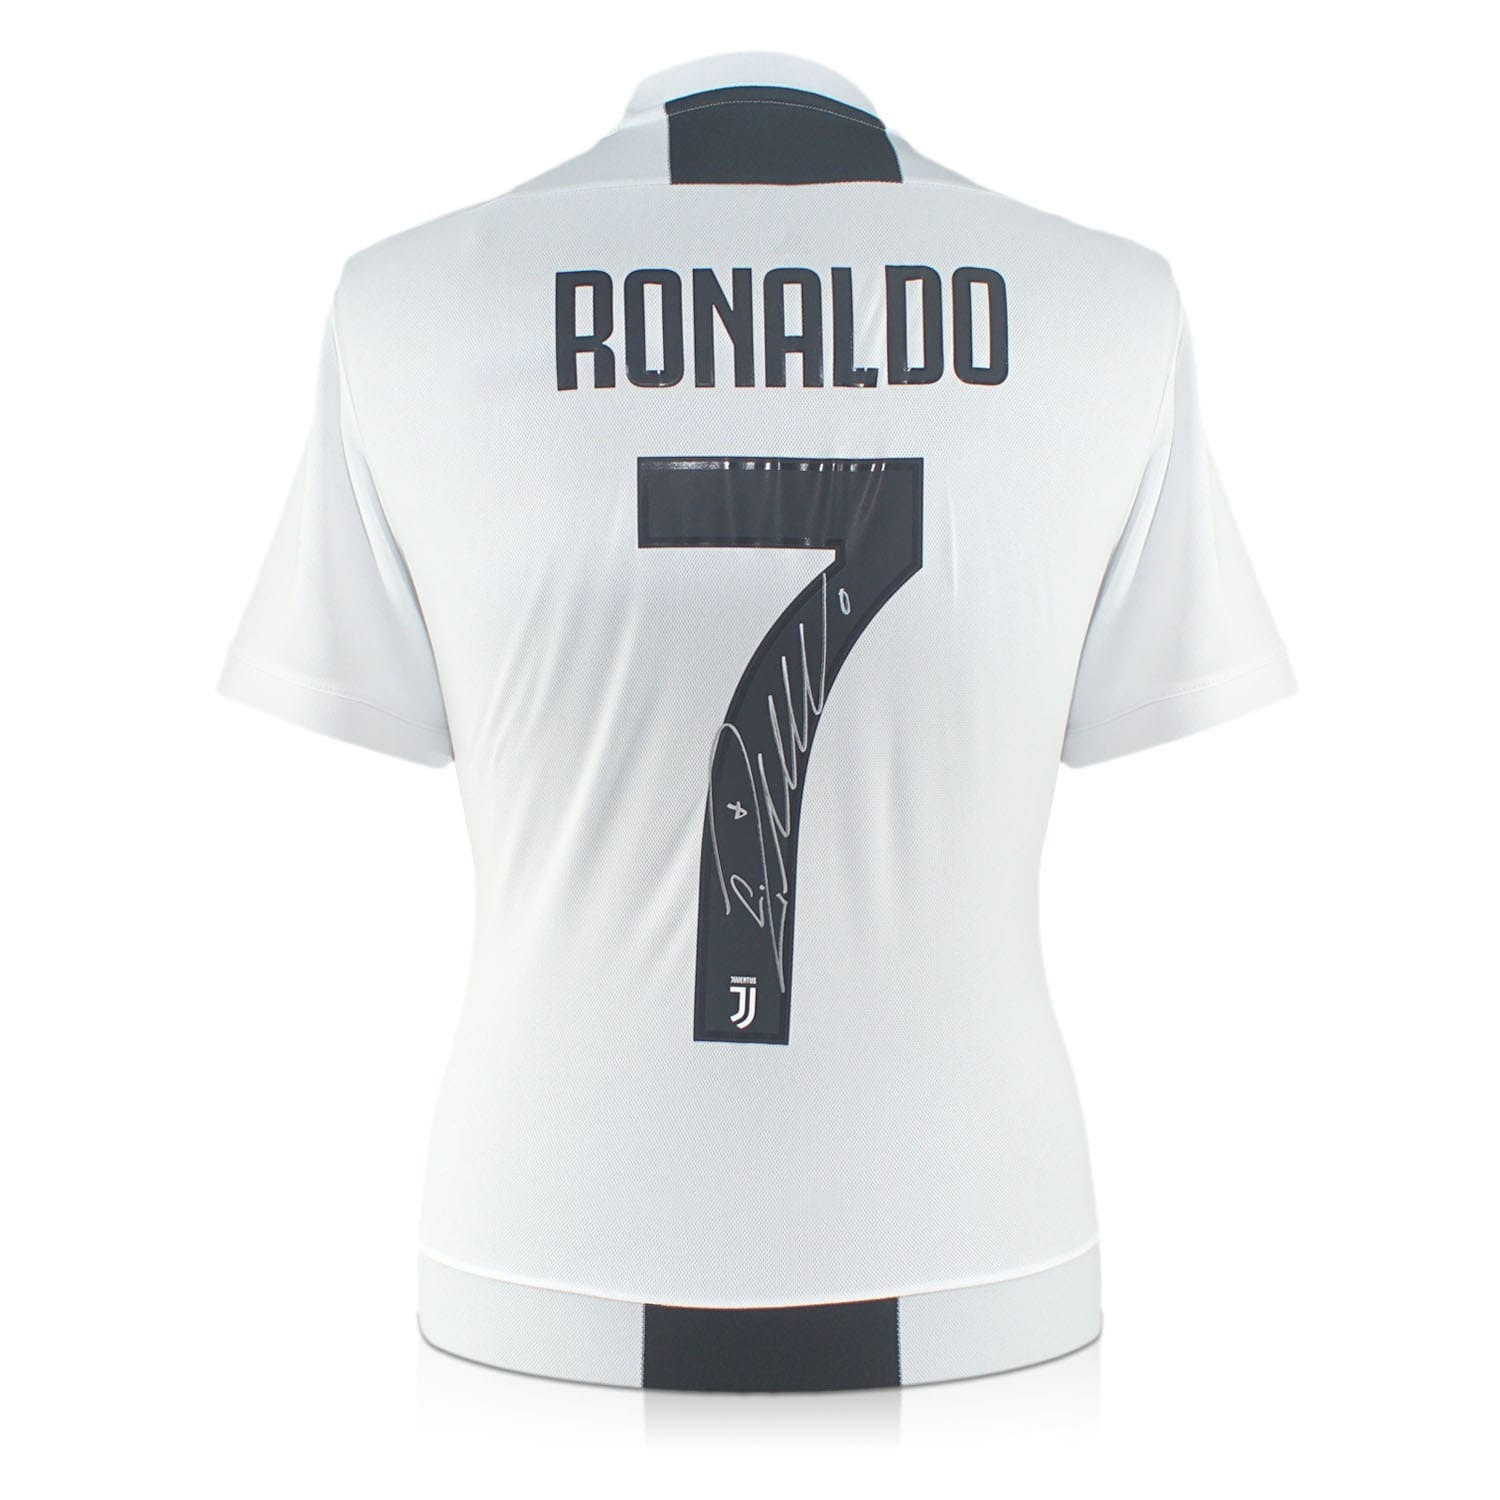 super popular 9f3b9 18fcd Details about Cristiano Ronaldo Signed Juventus Soccer Jersey | Sport  Memorabilia